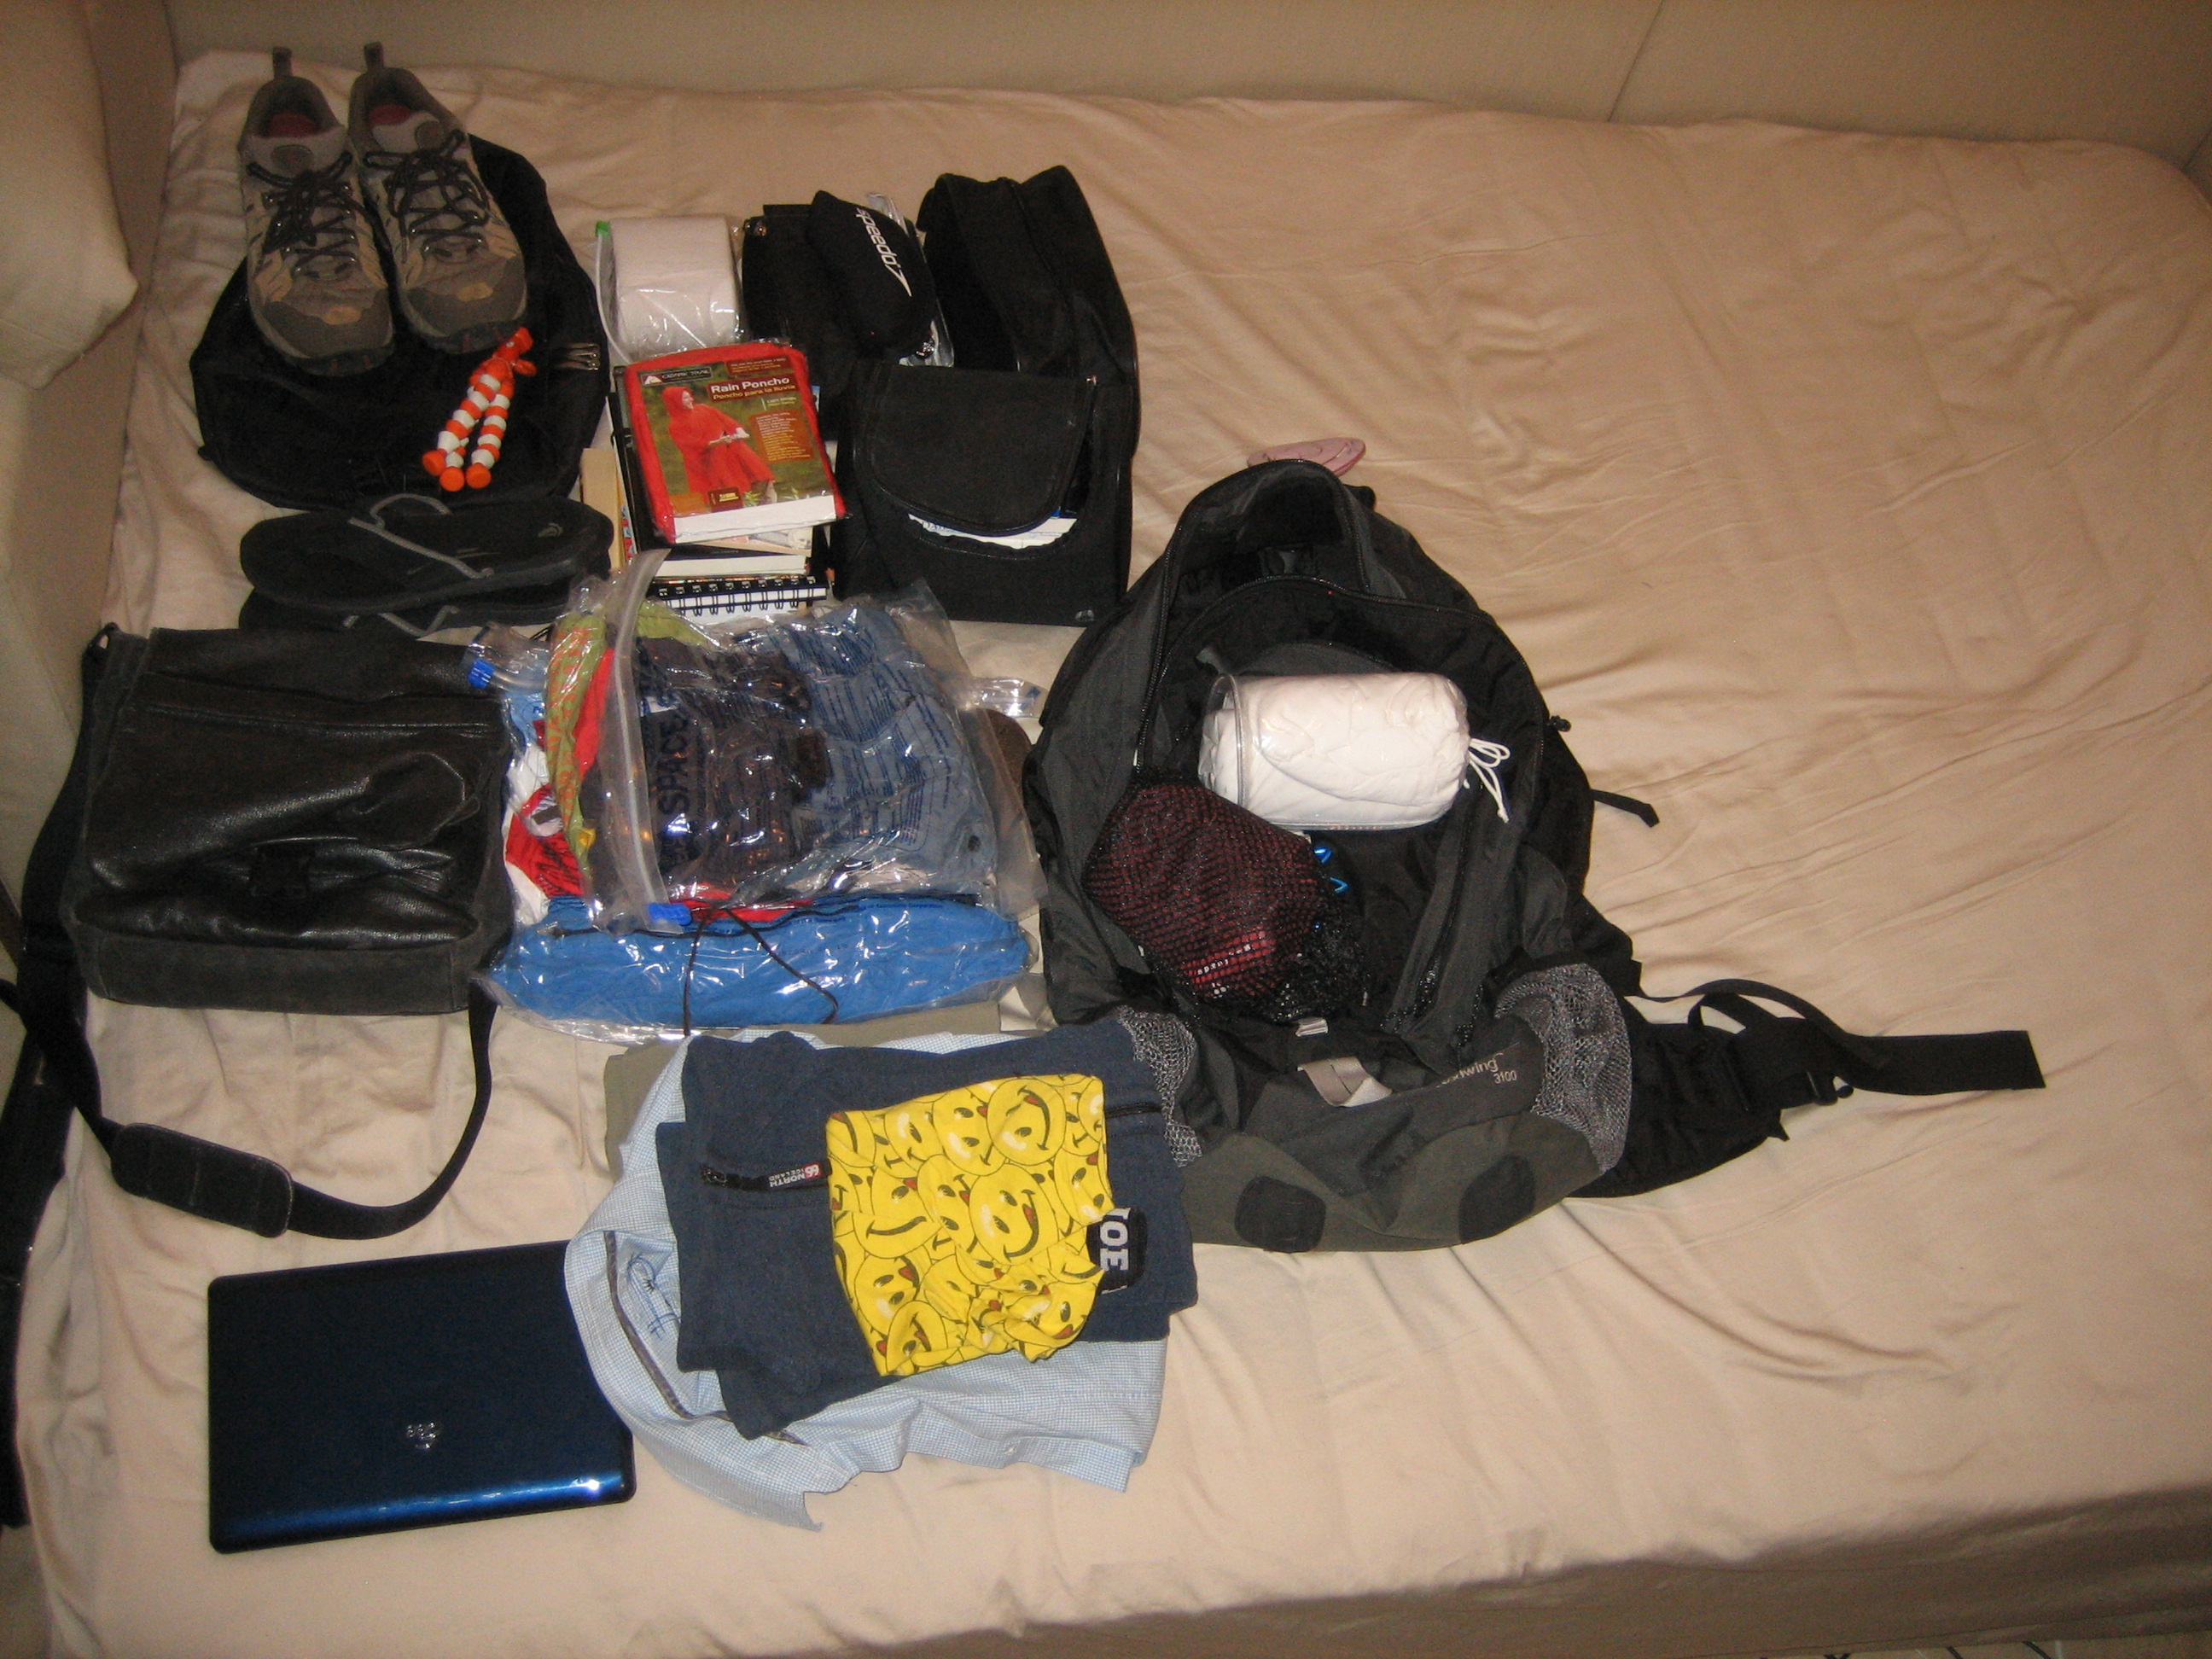 Small stuff went into bags and the clothes into space bags